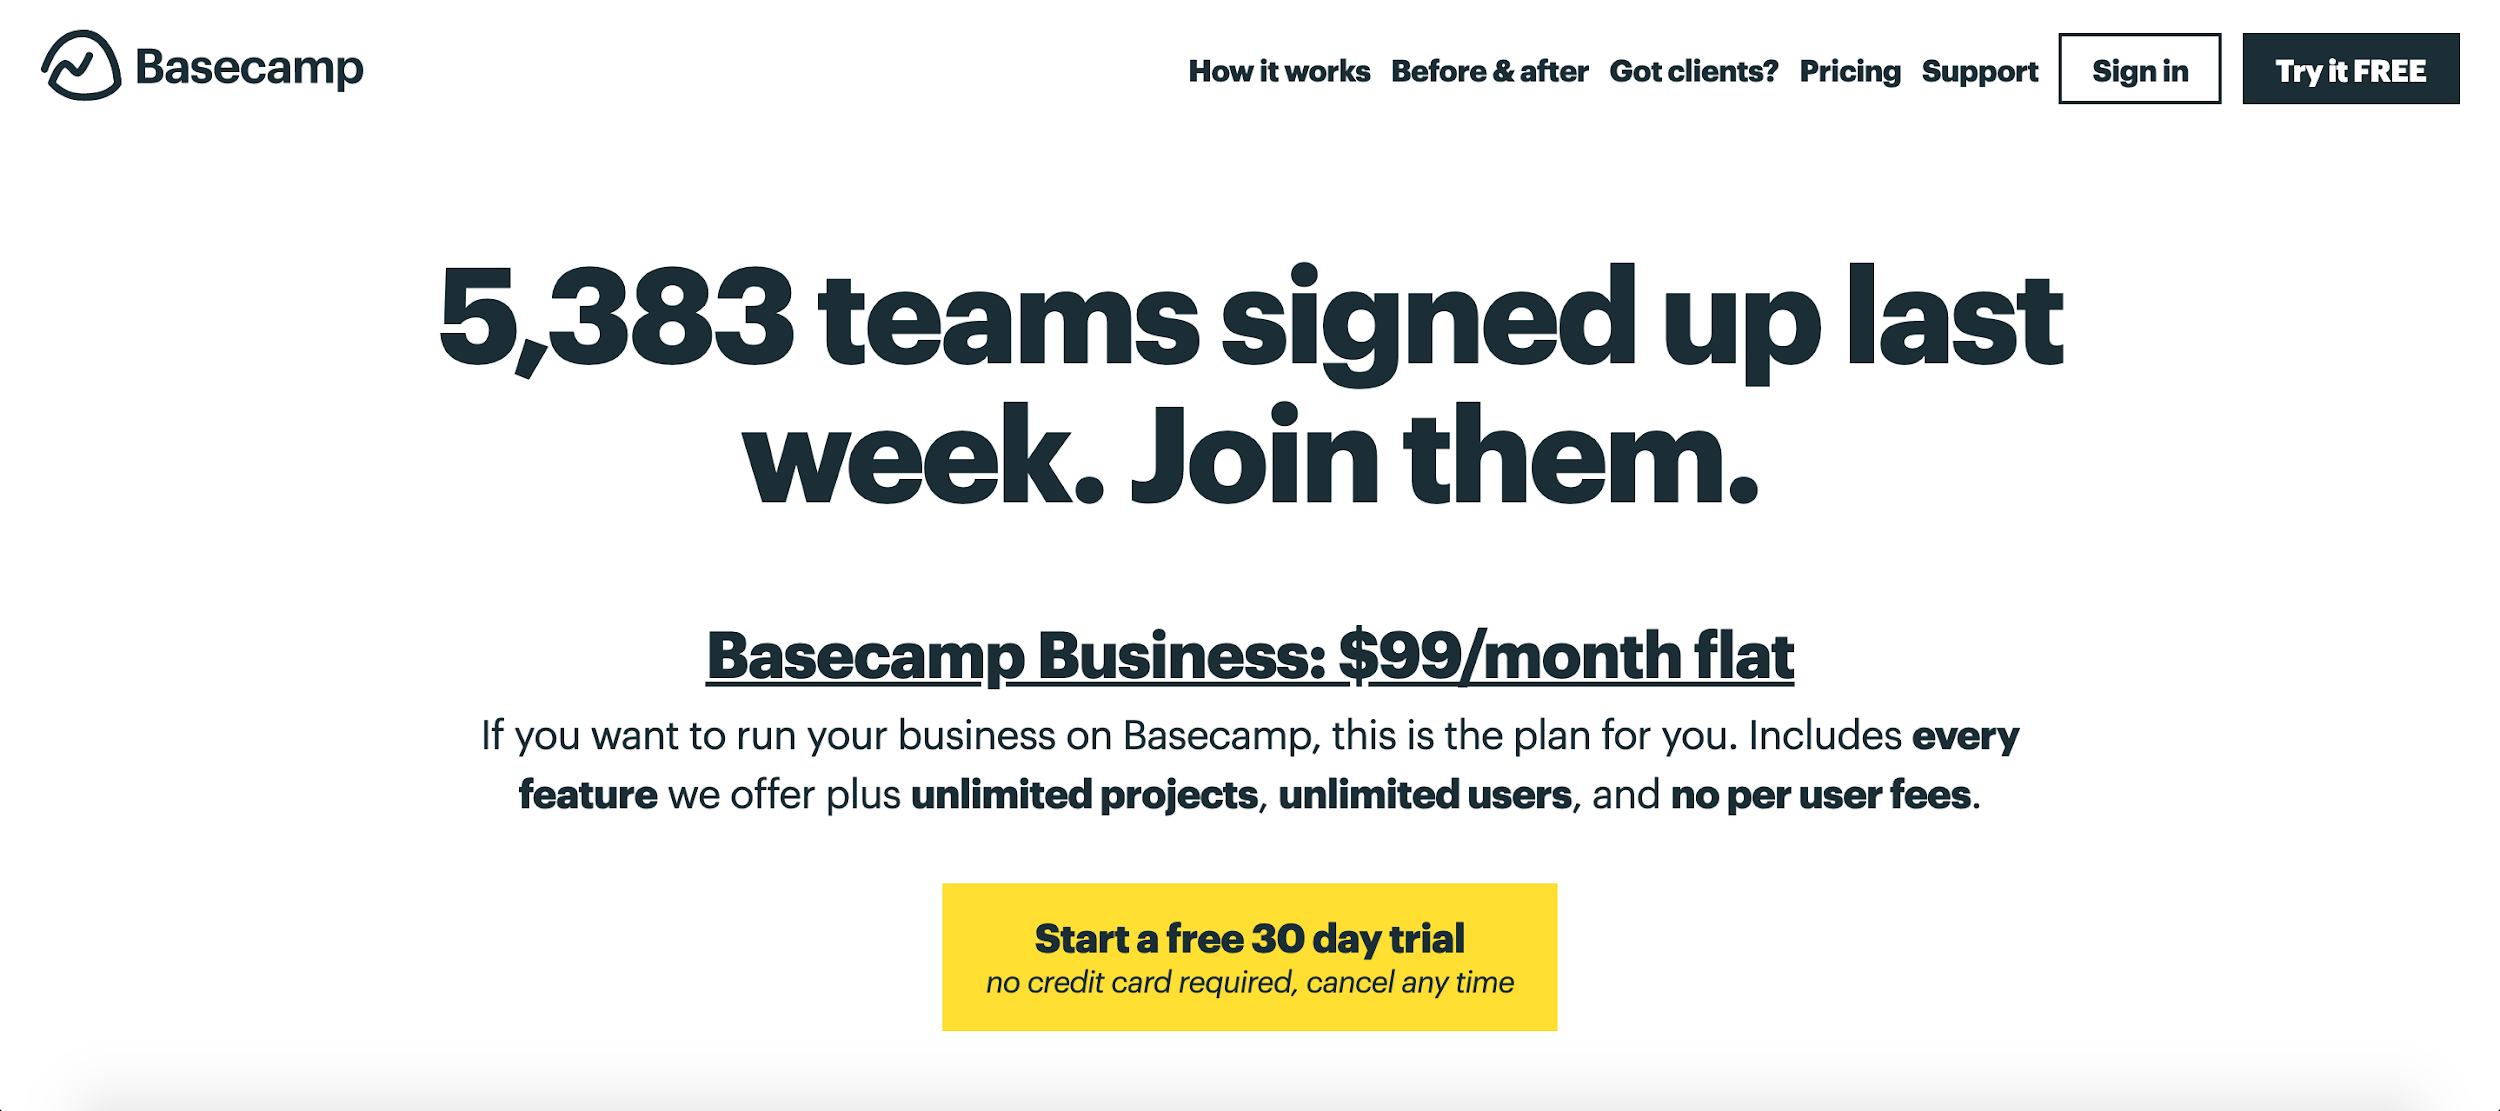 Basecamp saas pricing models